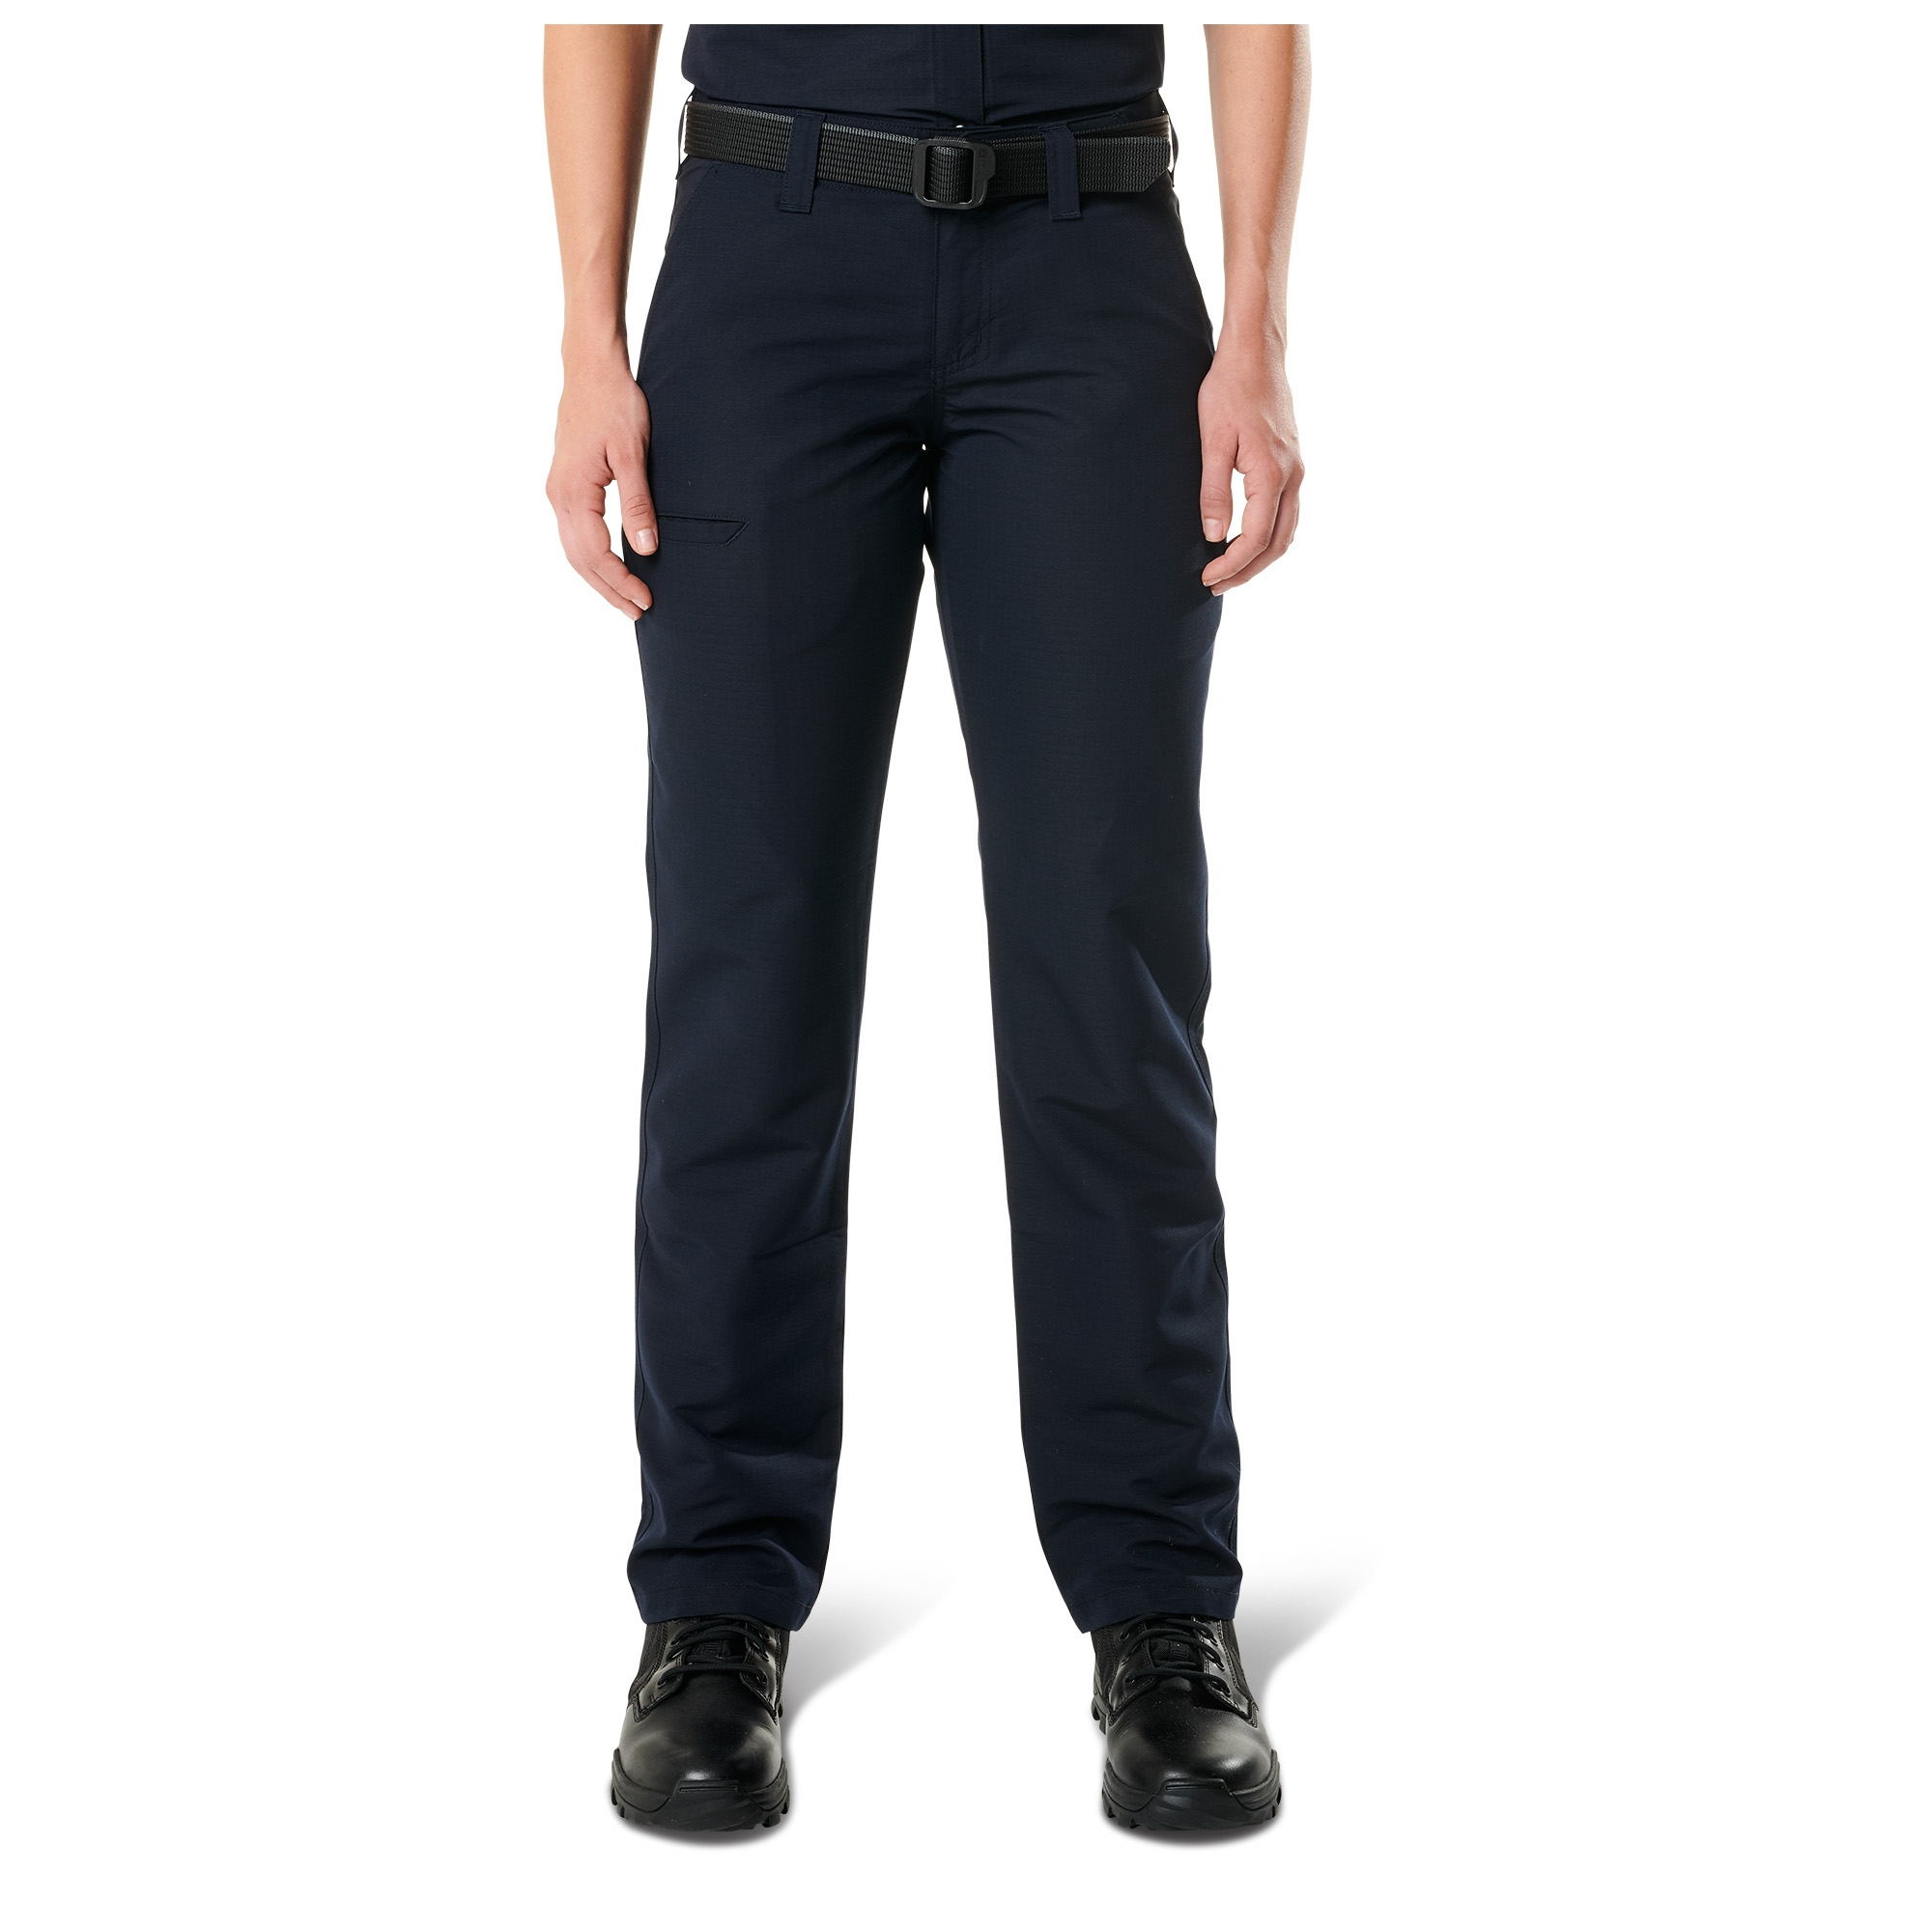 5.11 Tactical Women's Fast-Tac™ Urban Pant (Blue) thumbnail